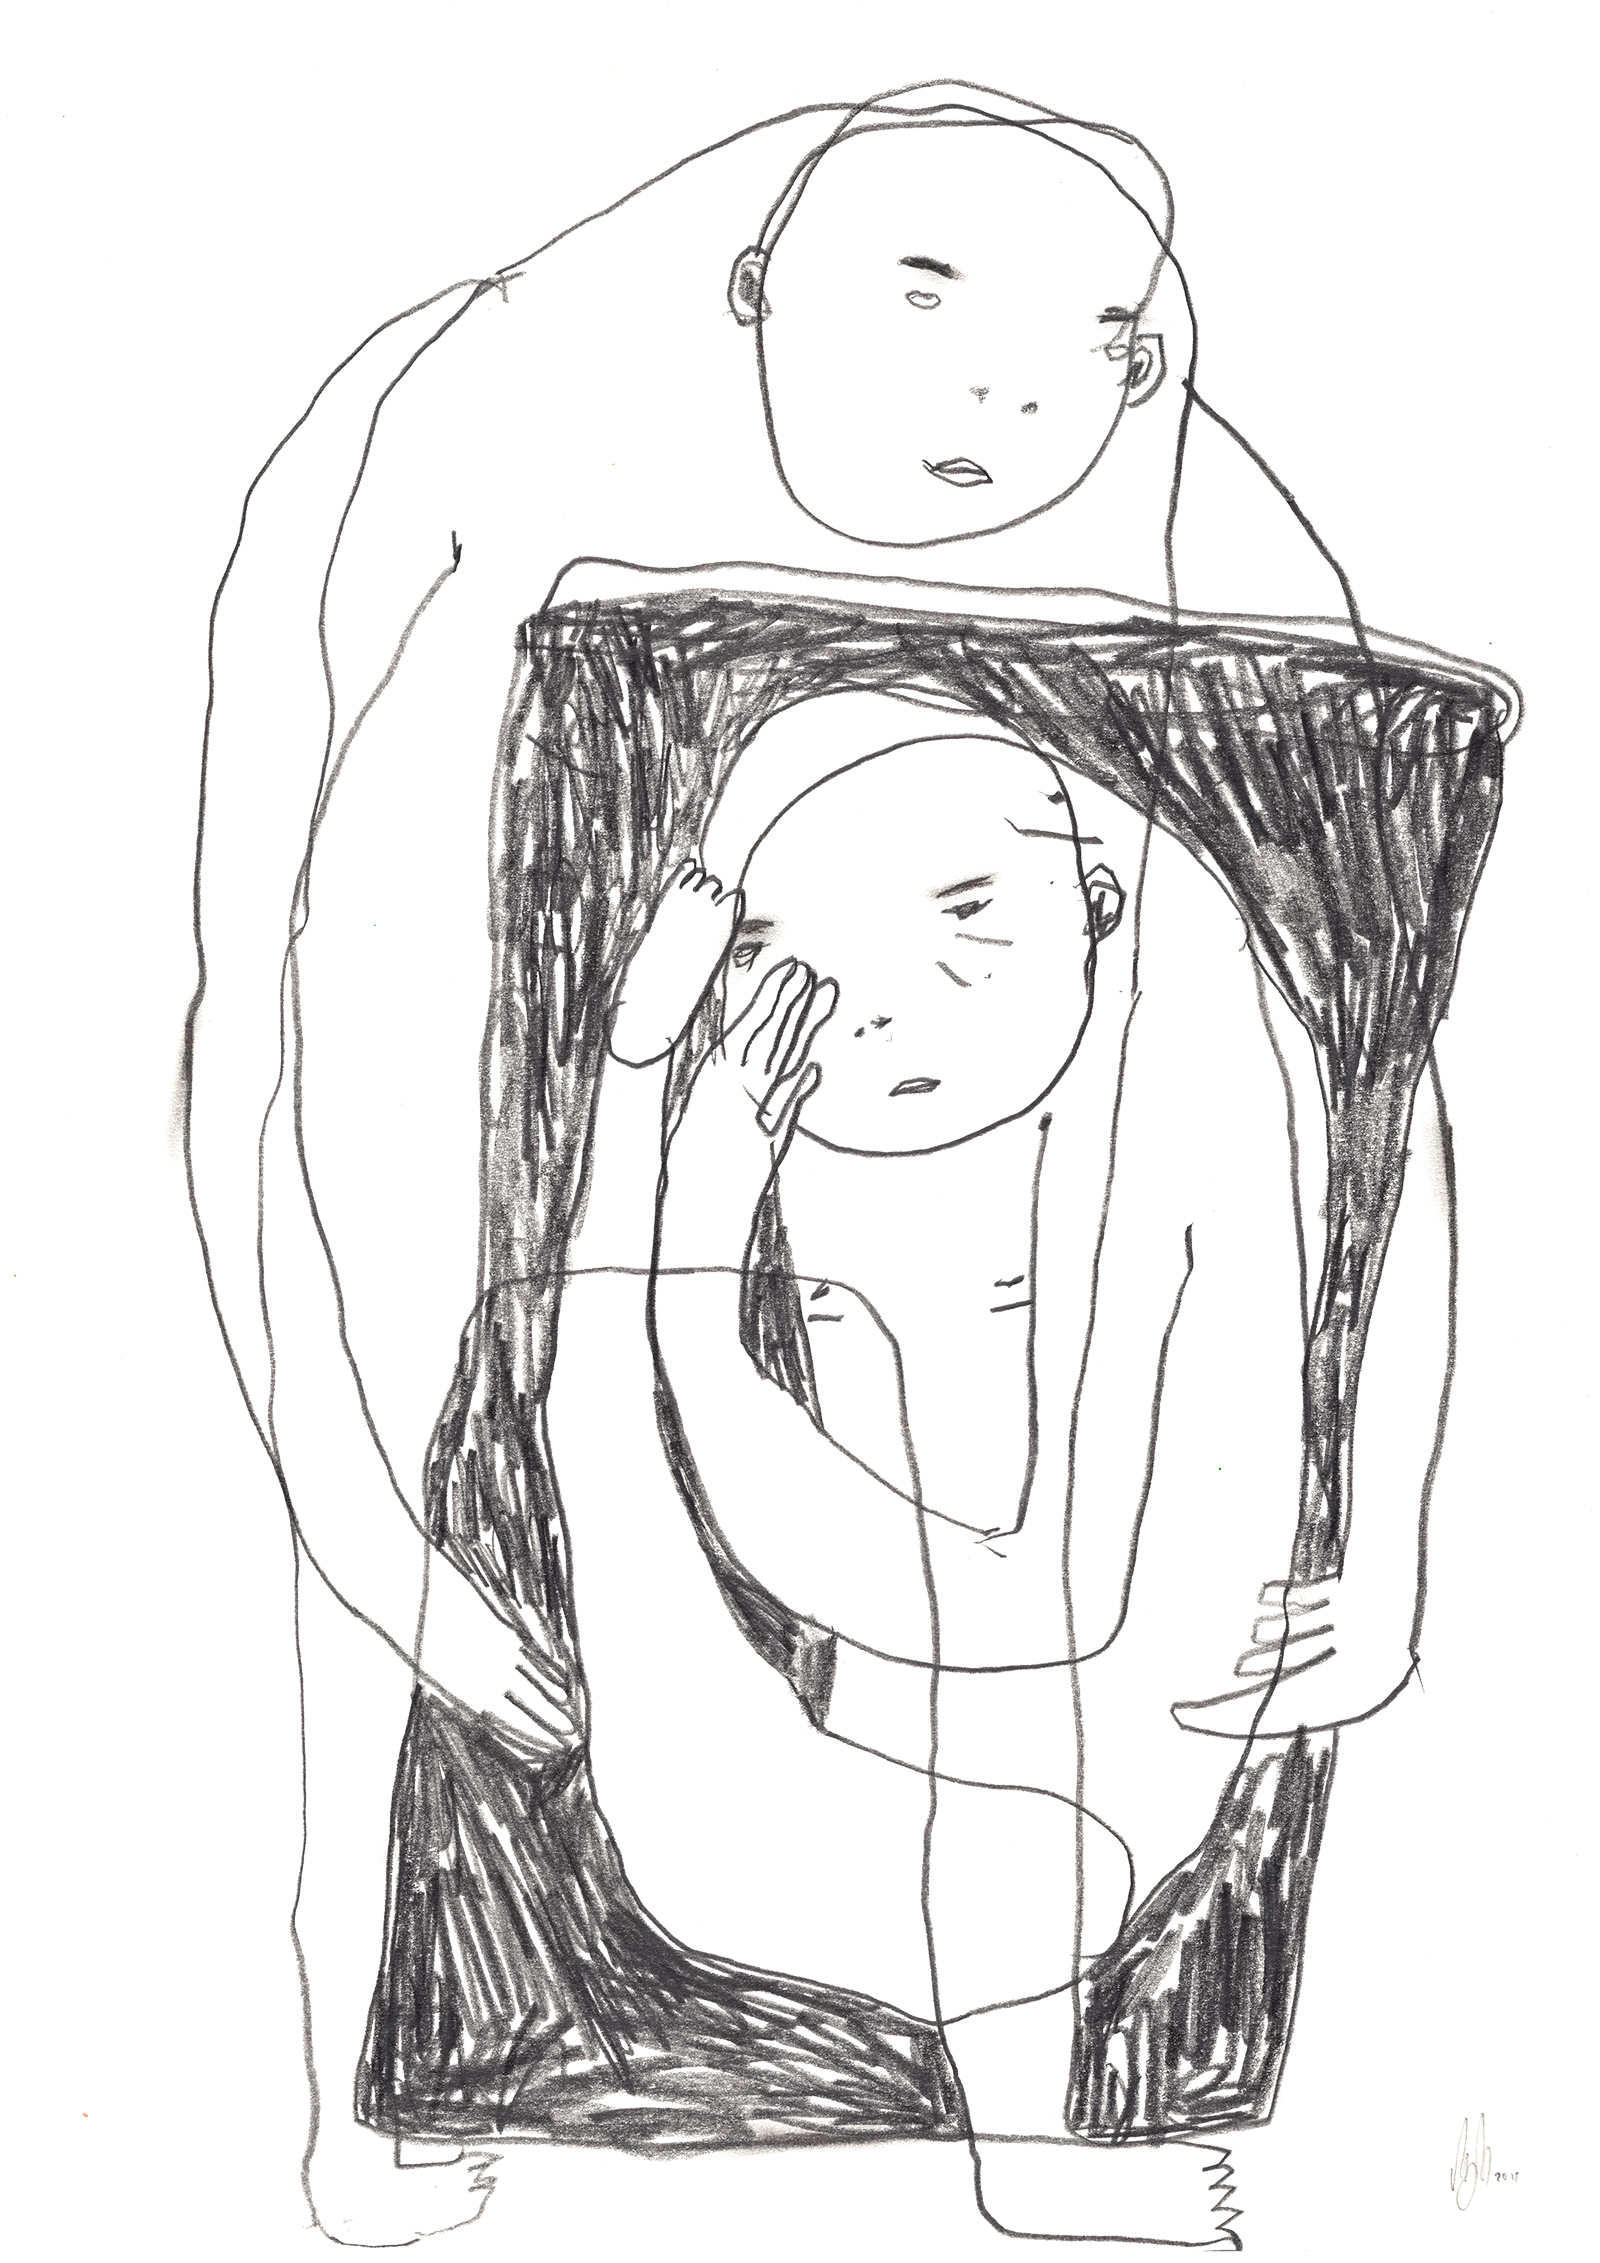 drawings, expressive, graphical, illustrative, minimalistic, bodies, everyday life, moods, black, white, paper, pencils, abstract-forms, contemporary-art, copenhagen, danish, decorative, interior, interior-design, love, modern, modern-art, nordic, romantic, scandinavien, street-art, Buy original high quality art. Paintings, drawings, limited edition prints & posters by talented artists.